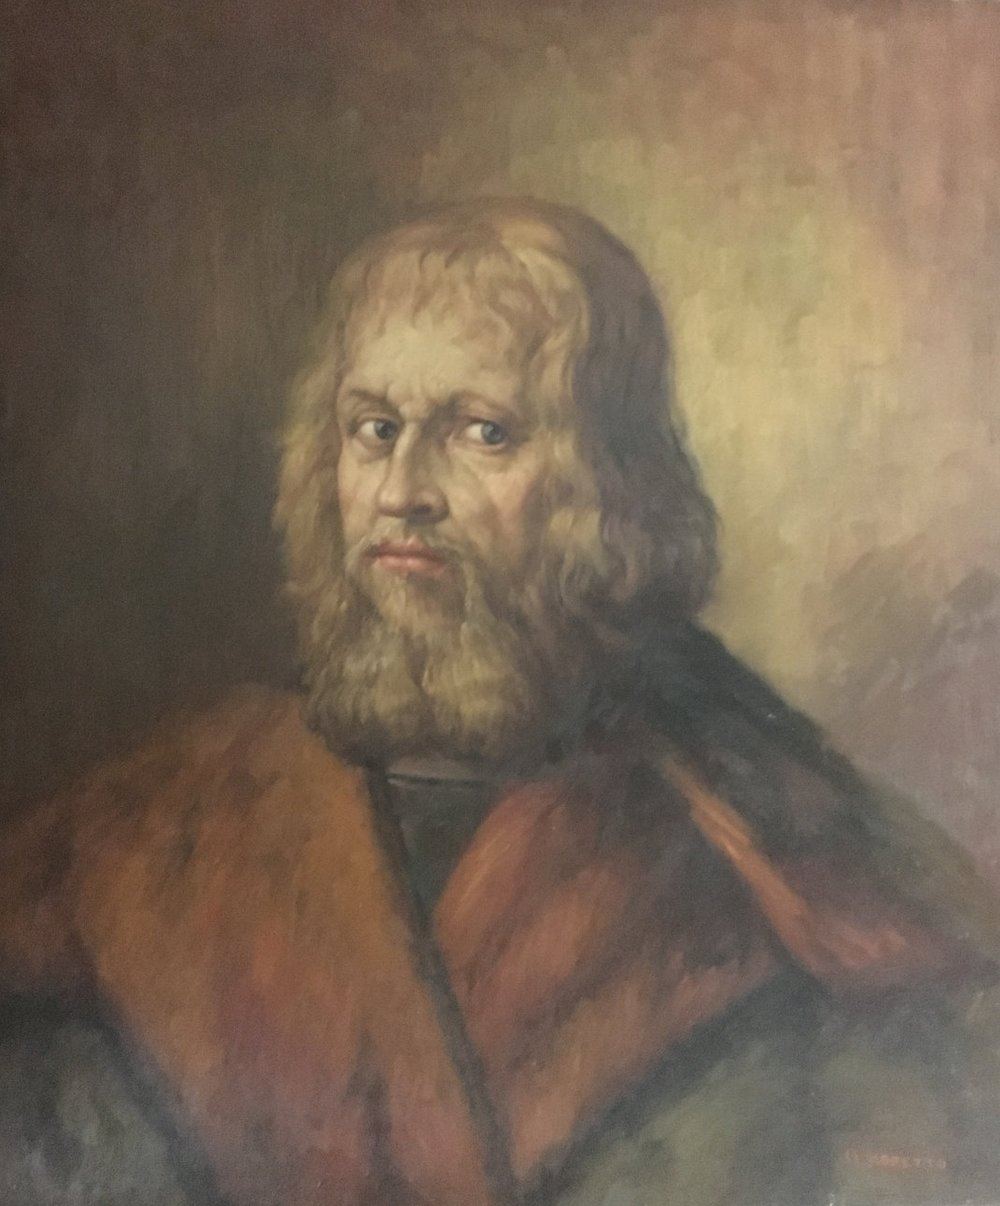 Vintage Painting of A Bearded Man